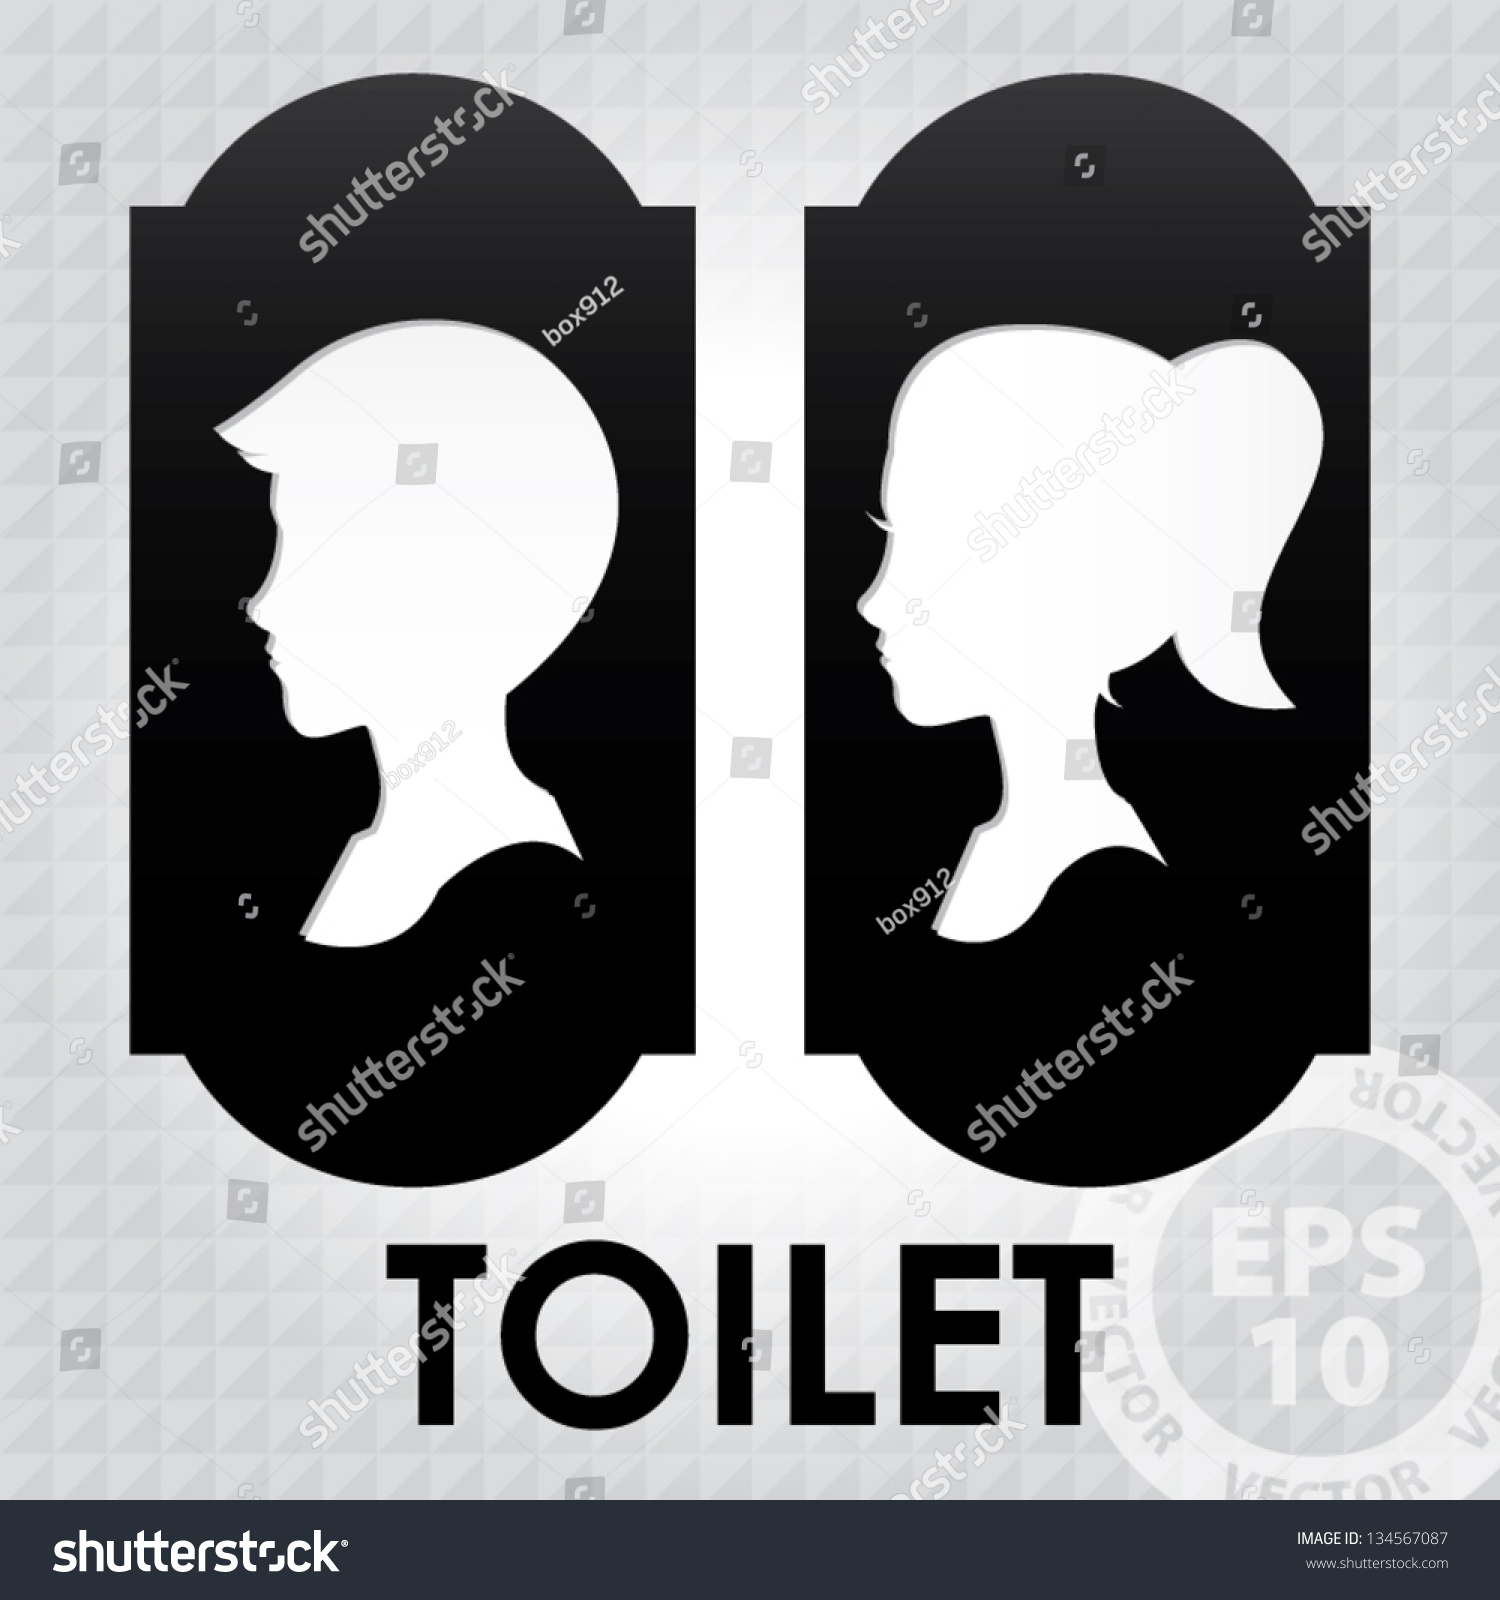 Girls bathroom sign outline - Classic Toilet Sign With Boy And Girl Head 01 Eps10 Vector